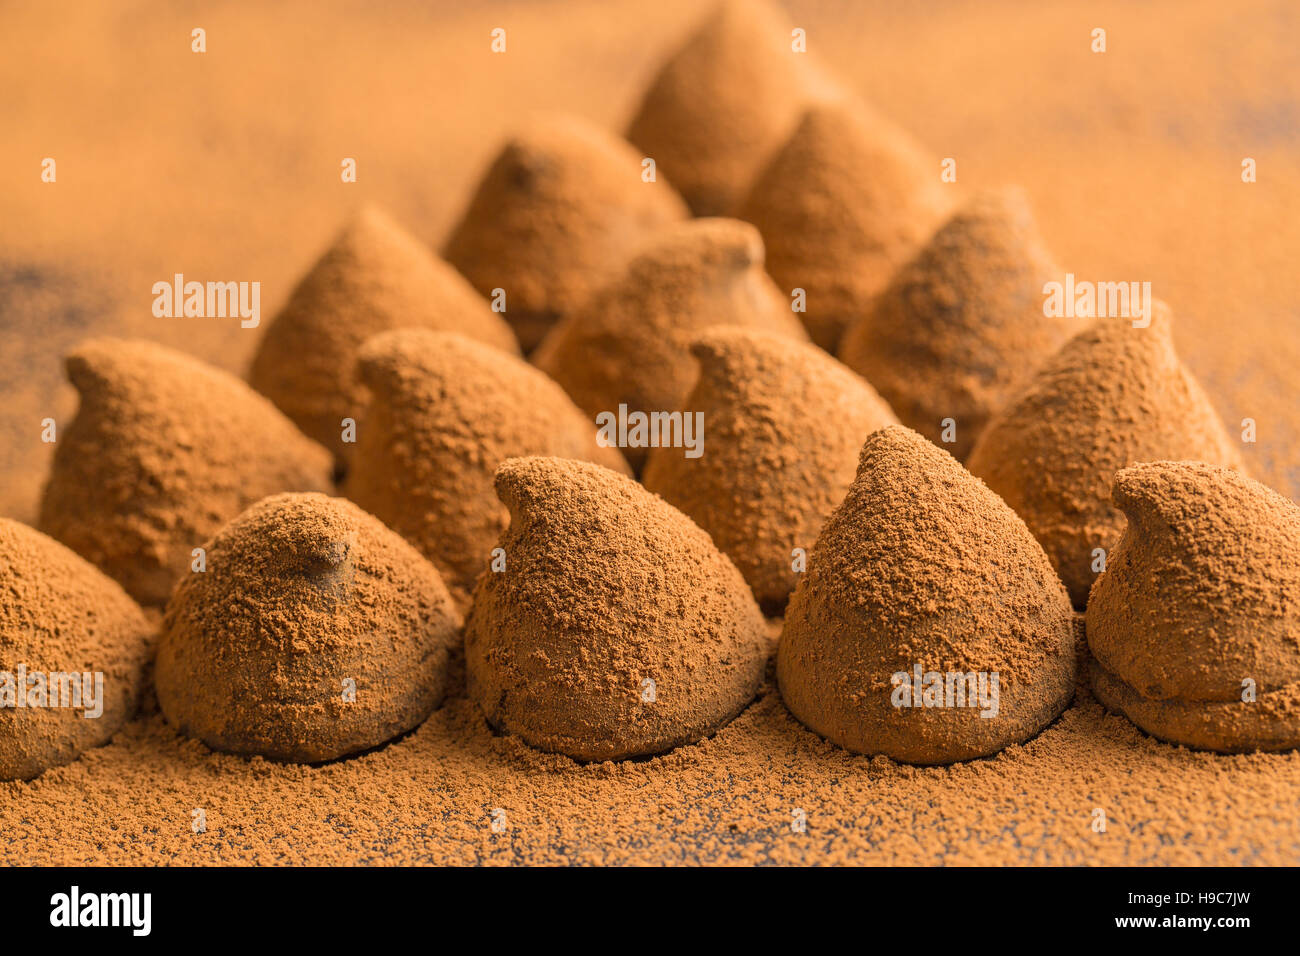 The sweet chocolate truffles and cocoa powder. - Stock Image